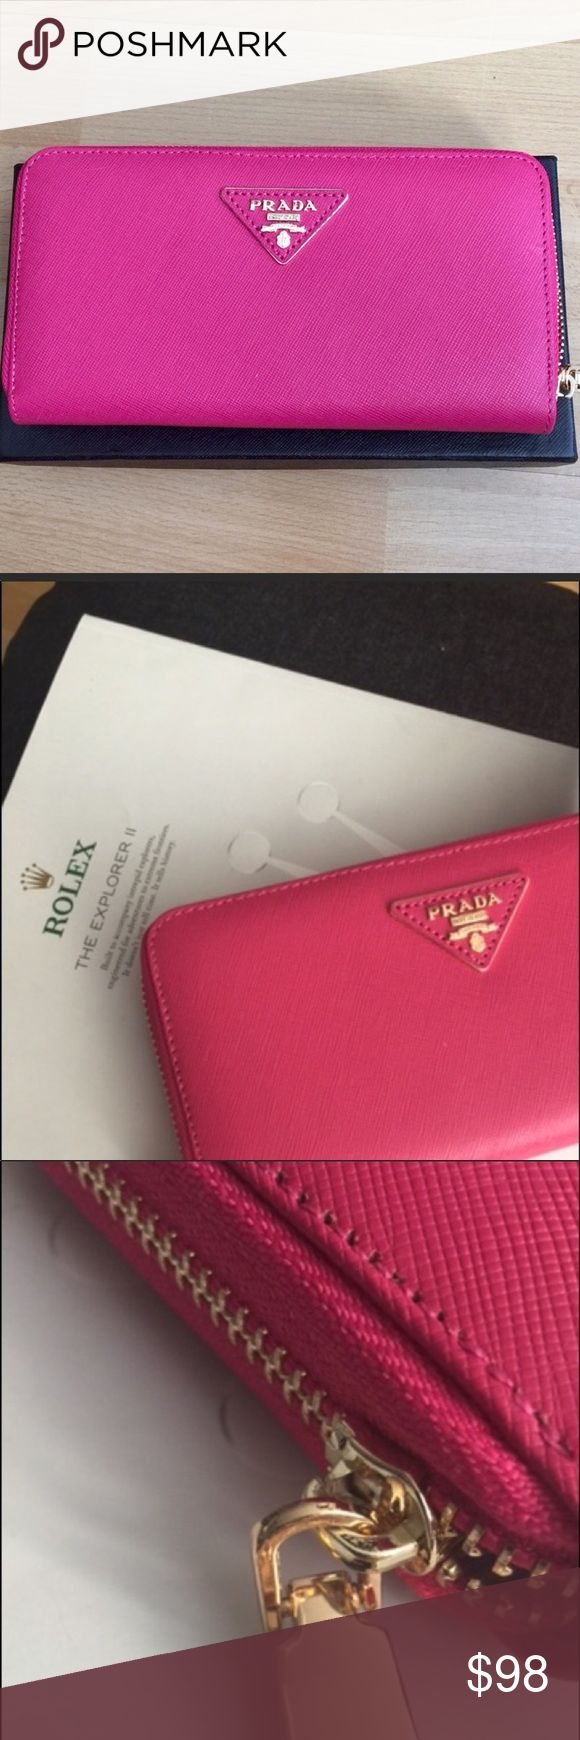 "💄Hot Pink Designer Zip Around Wallet 💄 Gorgeous designer long Saffiano wallet with golden hardware. Purchased on M & been sitting in drawer ever since. Too pretty not to be used😍❤️😍Brand for Exposure👍🏻offers considered! Plz do NOT ask the obvious... Price reflective TY 😘 Zip-around wallet. Interior zip pocket. Eight credit card slots. Two billfold pockets. Interior zip change pocket. 4 1/4""H x 7 1/2""W x 3/4""D; Made in Italy. perfect! Prada Bags Wallets"